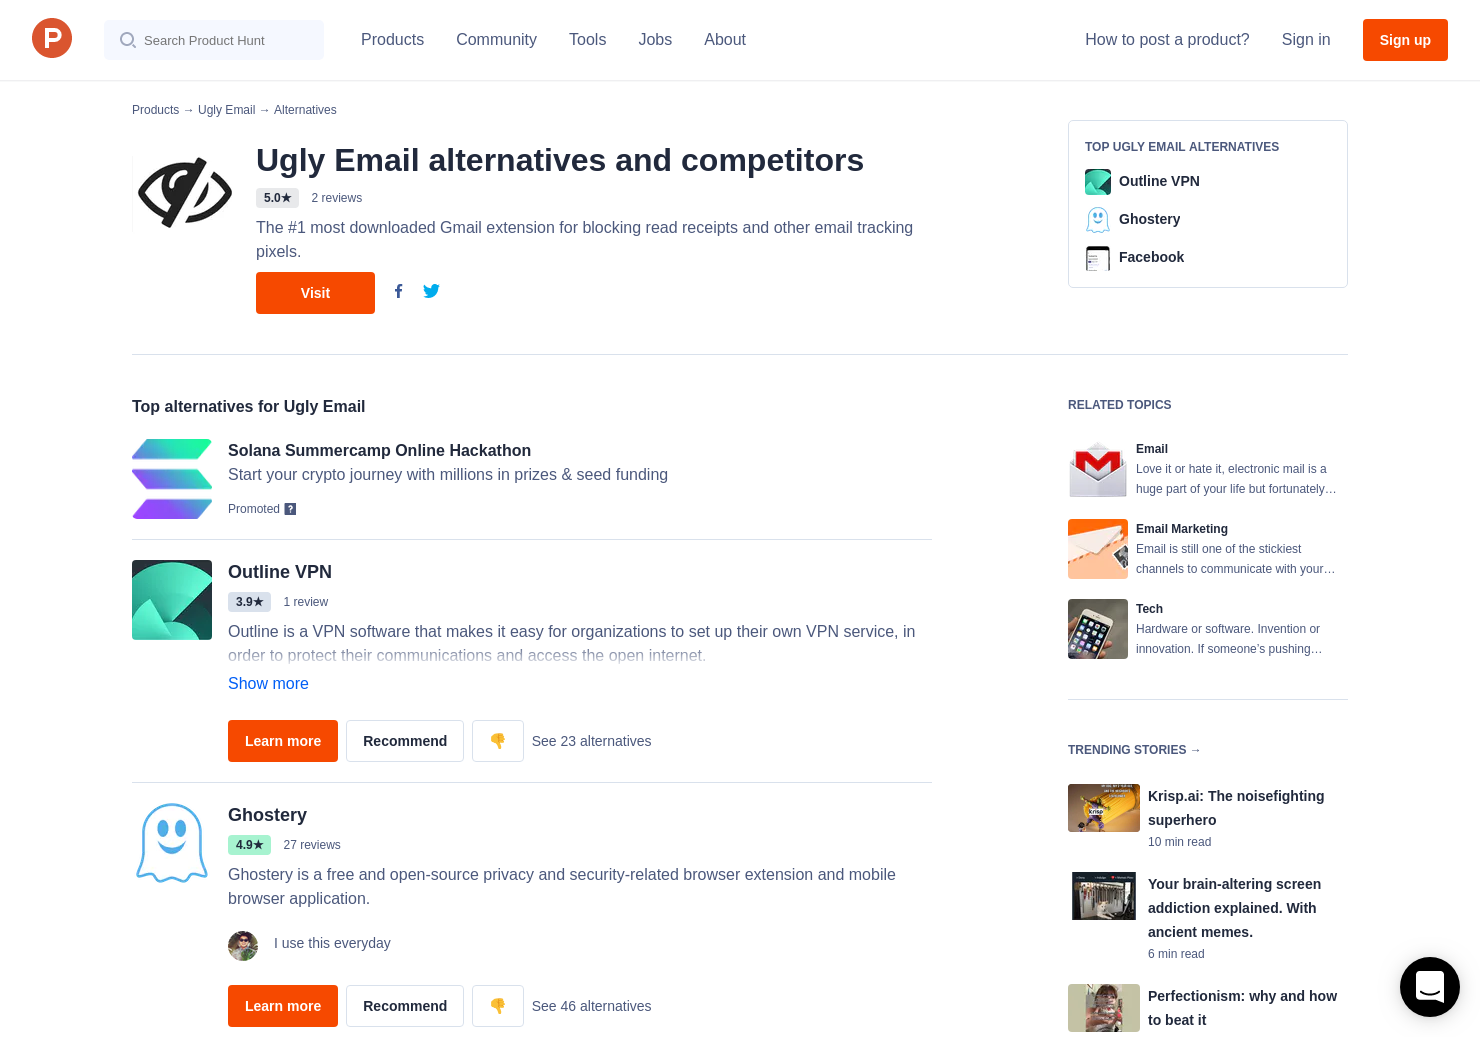 7 Alternatives to Ugly Email | Product Hunt